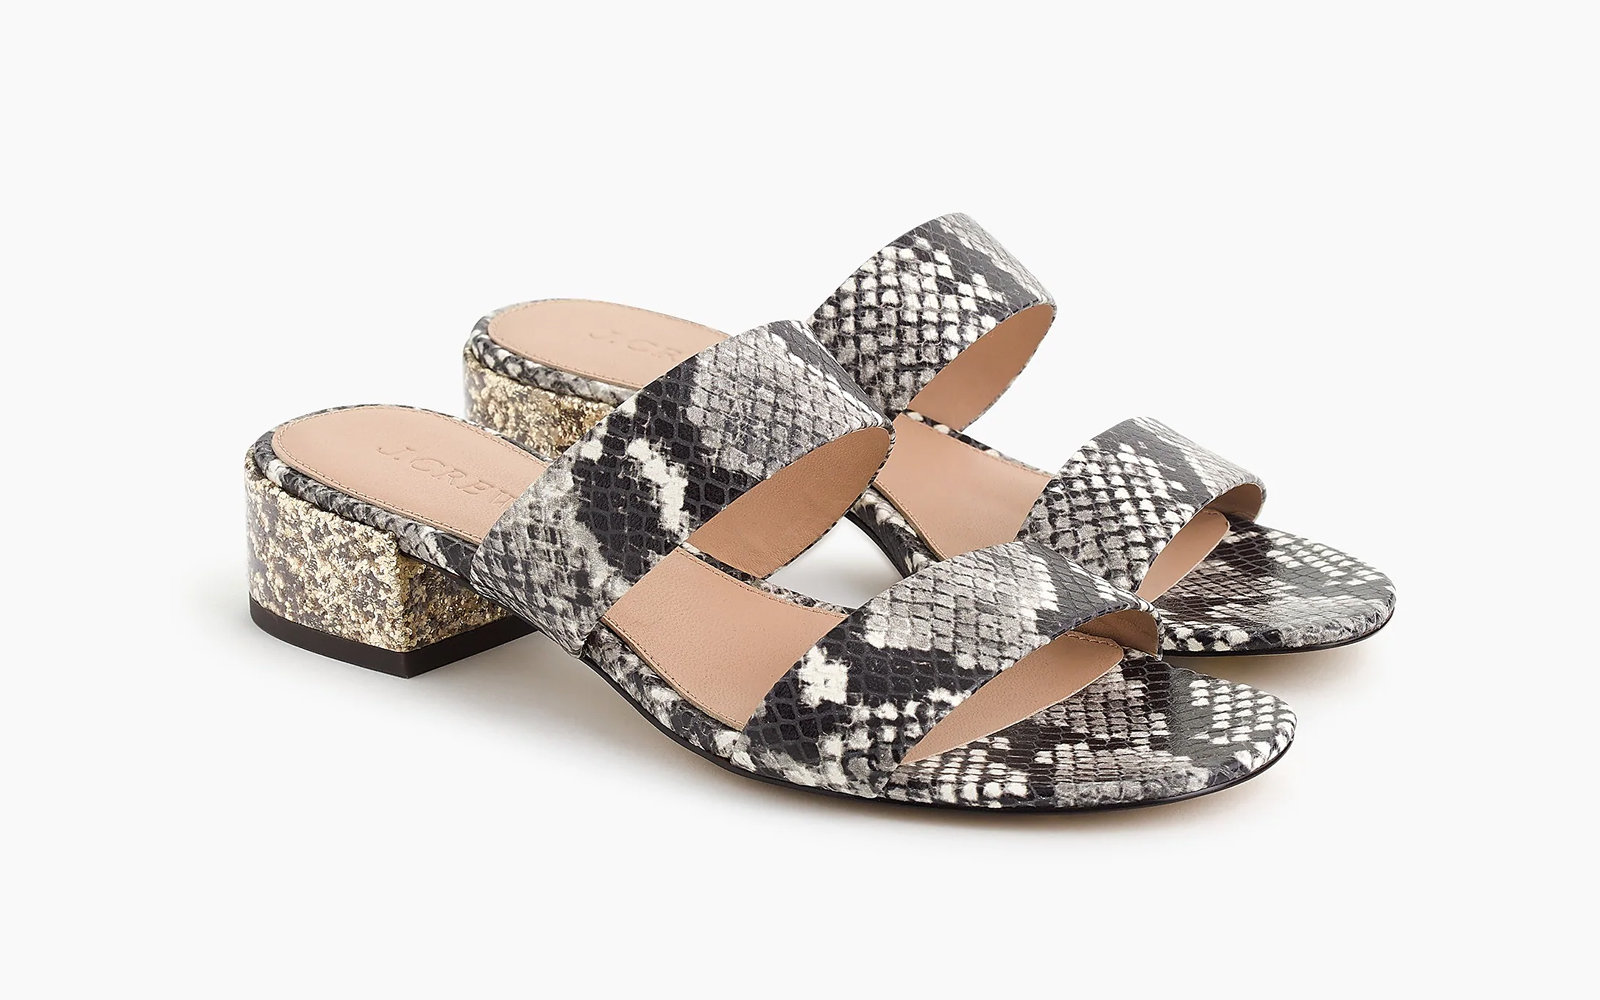 7fce3c1ffc8baa Double-strap Leather Slides in Faux-snakeskin. J.Crew Midsummer Sandals Sale